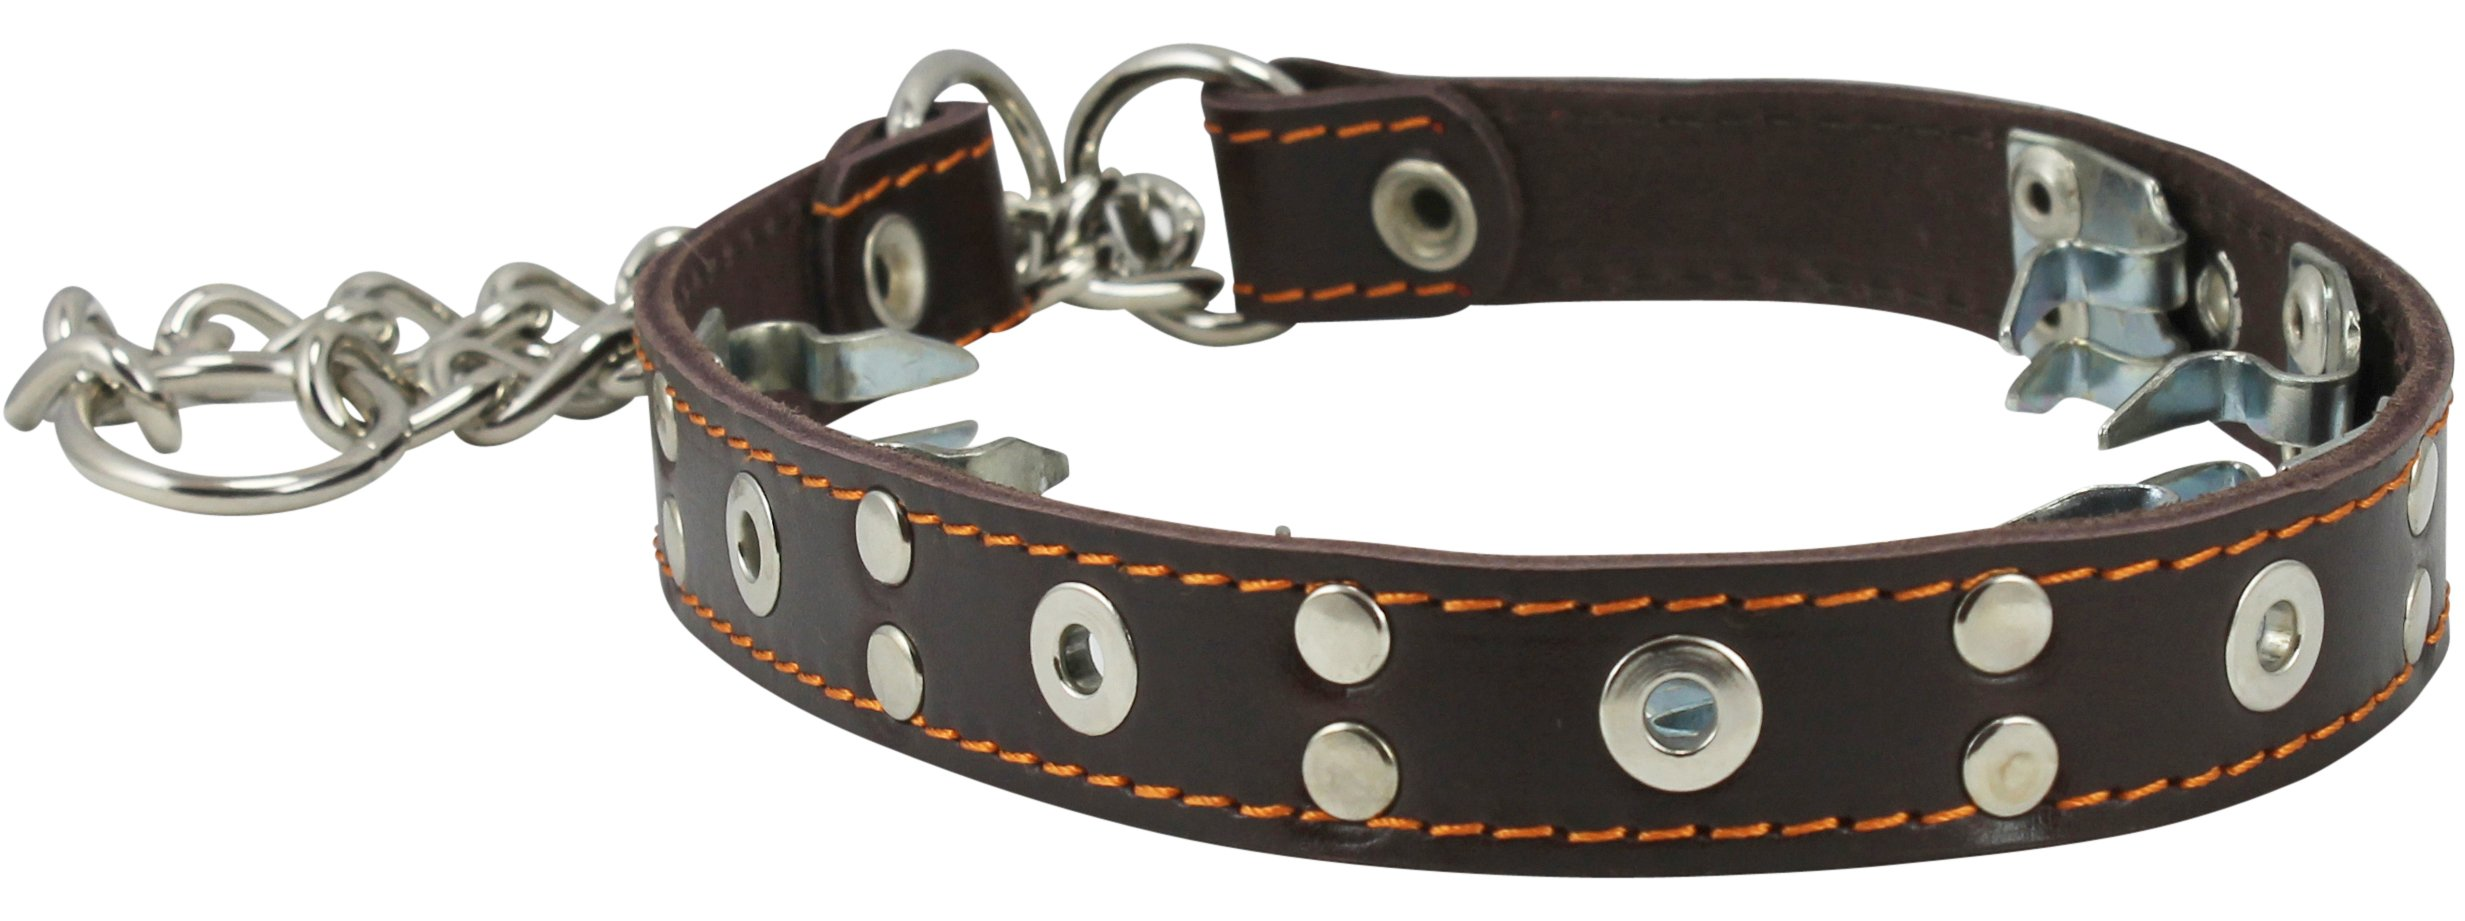 Dogs My Love Training Genuine Leather Pinch Martingale Dog Collar Studded 4mm Link Brown 3 Sizes (15.5''-19'') by Dogs My Love